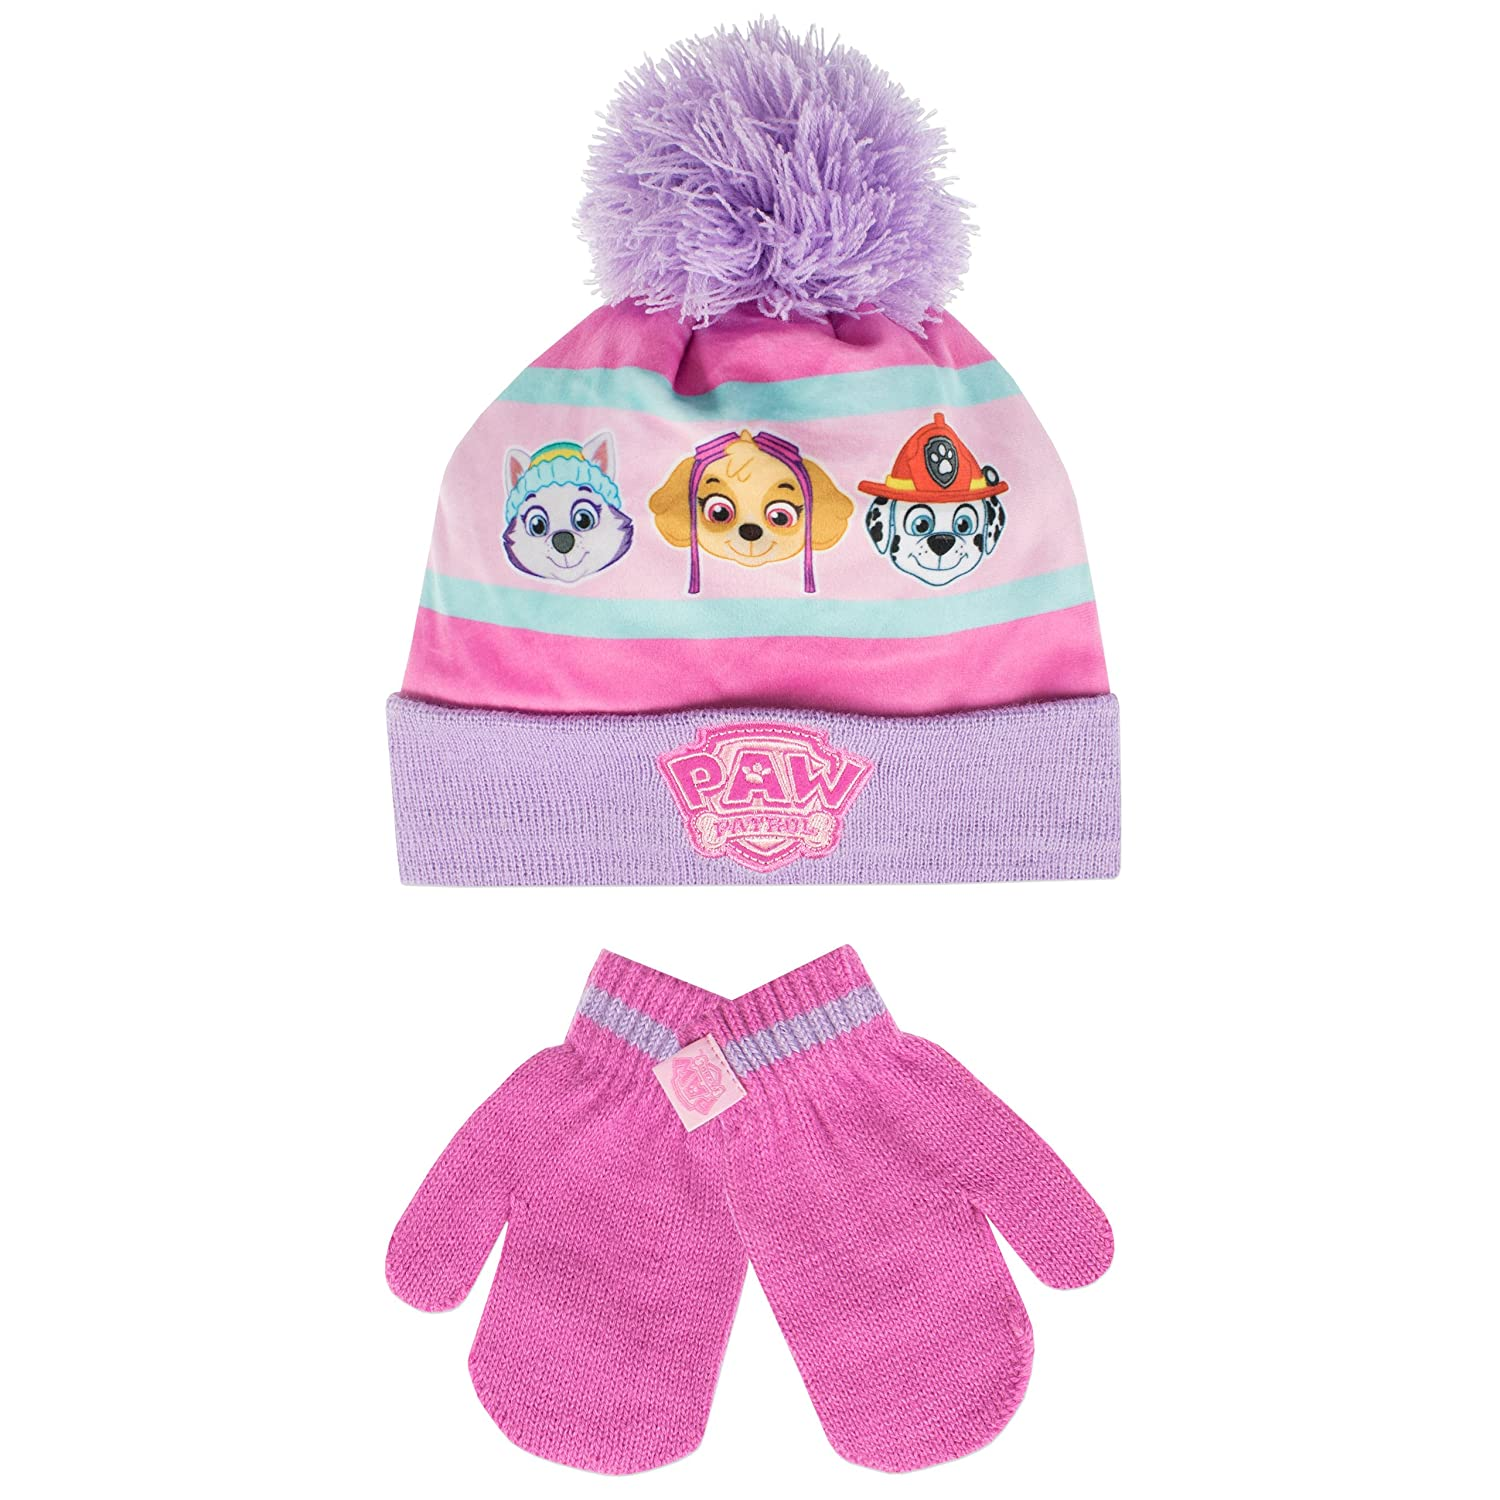 Paw Patrol Girls' Paw Patrol Hat and Gloves Set Size 6 - 8